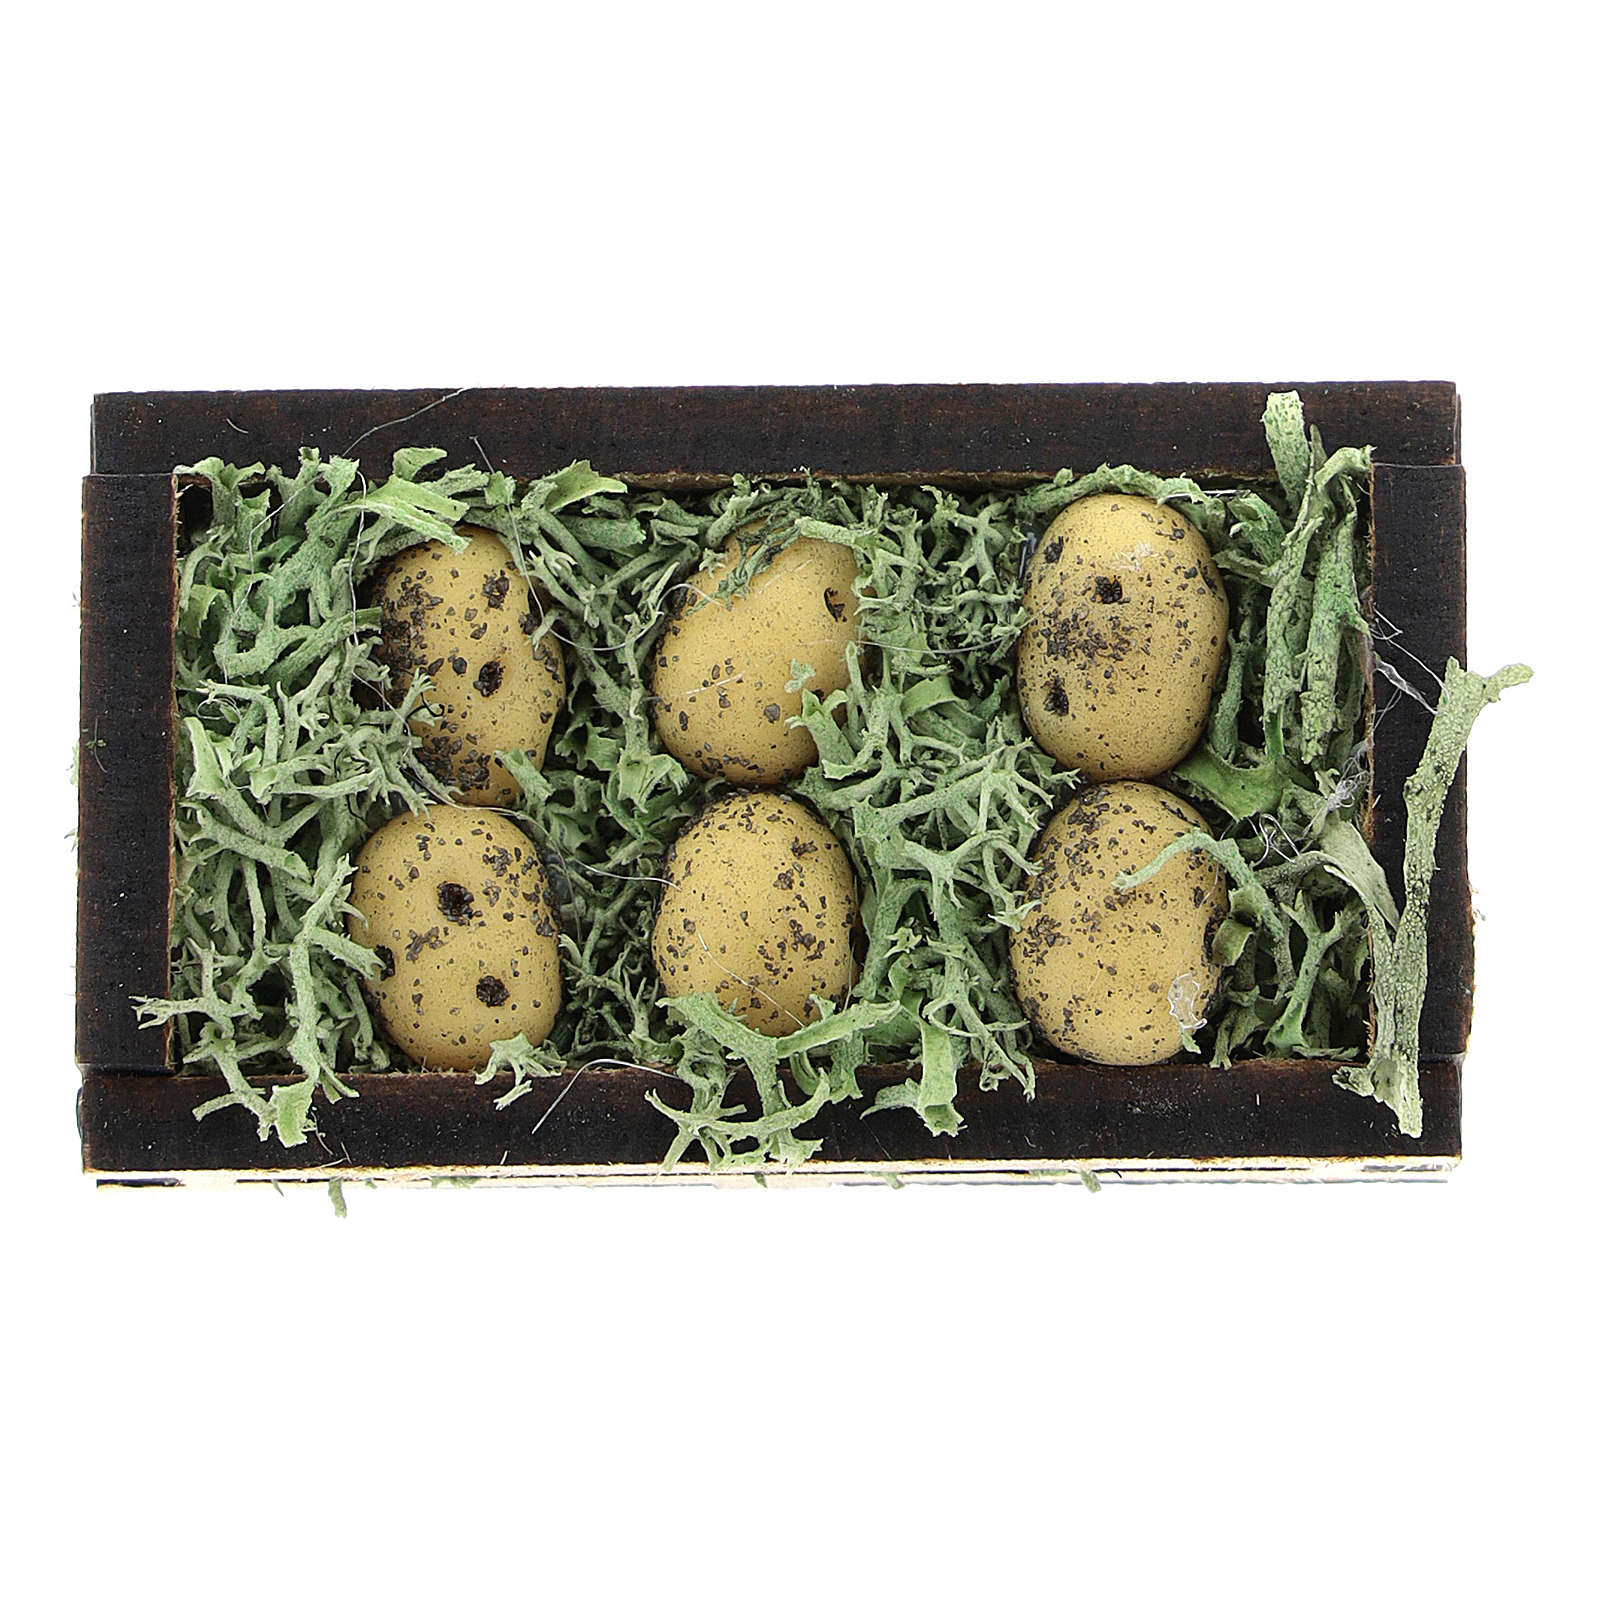 Wooden and resin case with potatoes for Nativity scene 4 cm 4